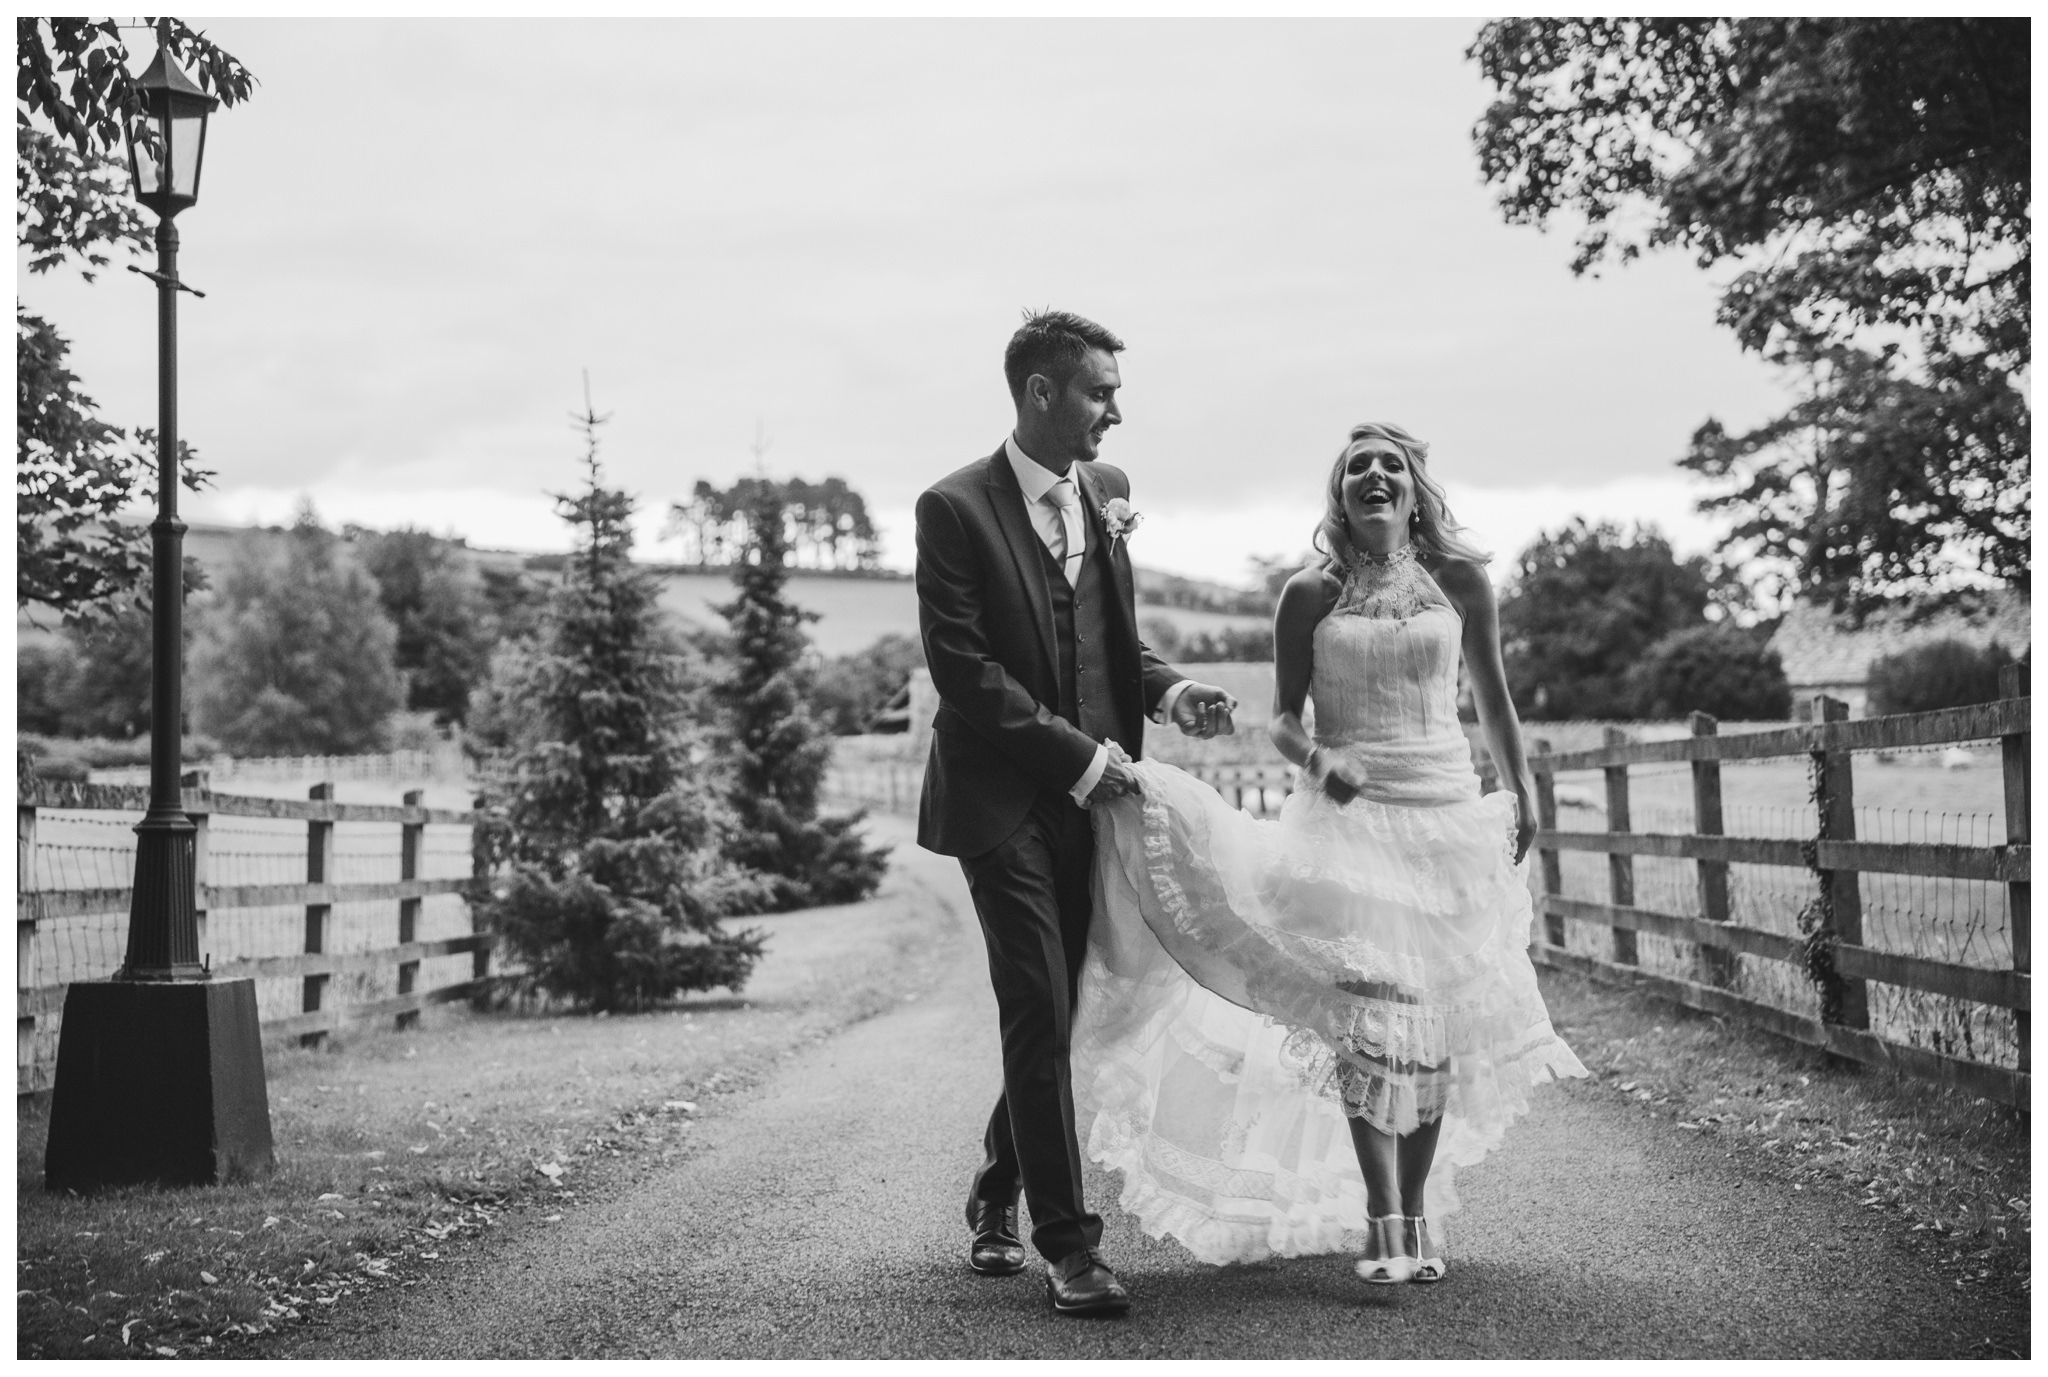 Richard Savage Photography - Wedding - Peterstone Court Brecon - 2016-05-11_0061